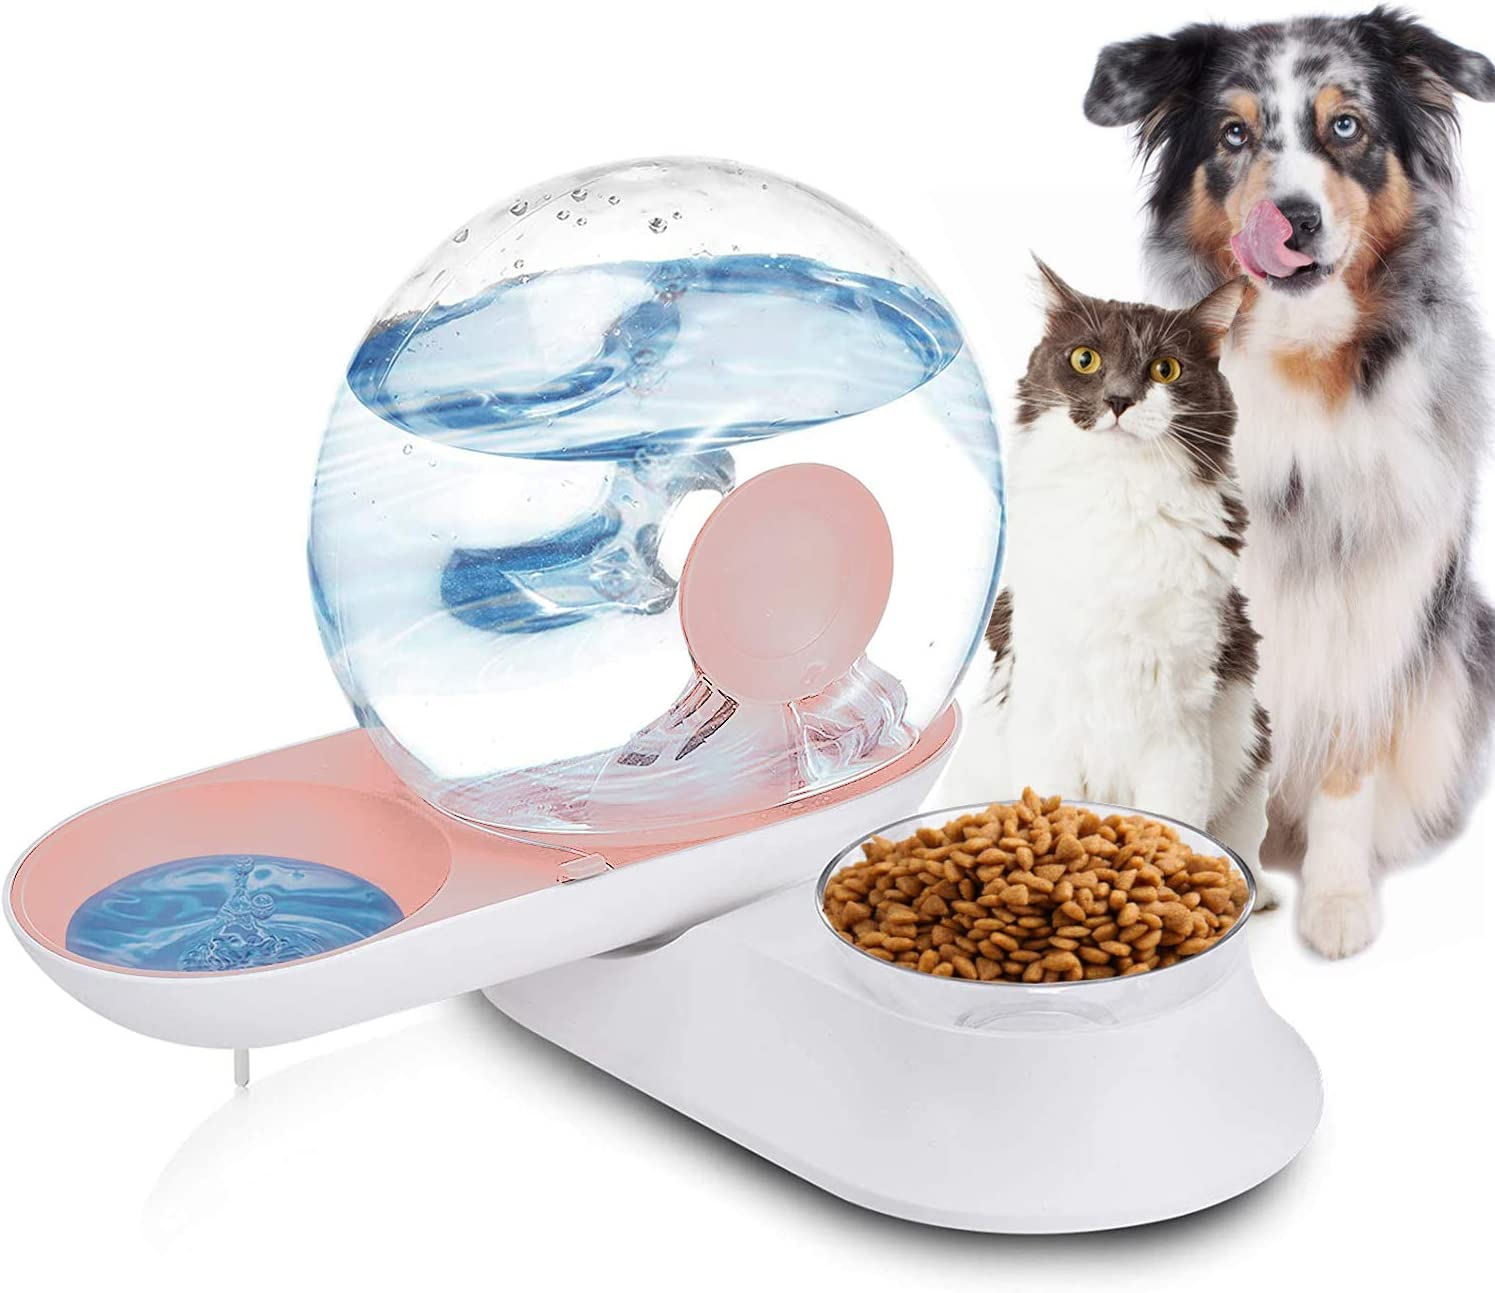 Lucky-M Double Dog Cat Water and Food Bowl Set, Detachable Transparent Bowl Automatic Water Dispenser Snail-Shaped Bottle Pet Feeder for Small Medium Size Dog Cat 2.8L (Pink)